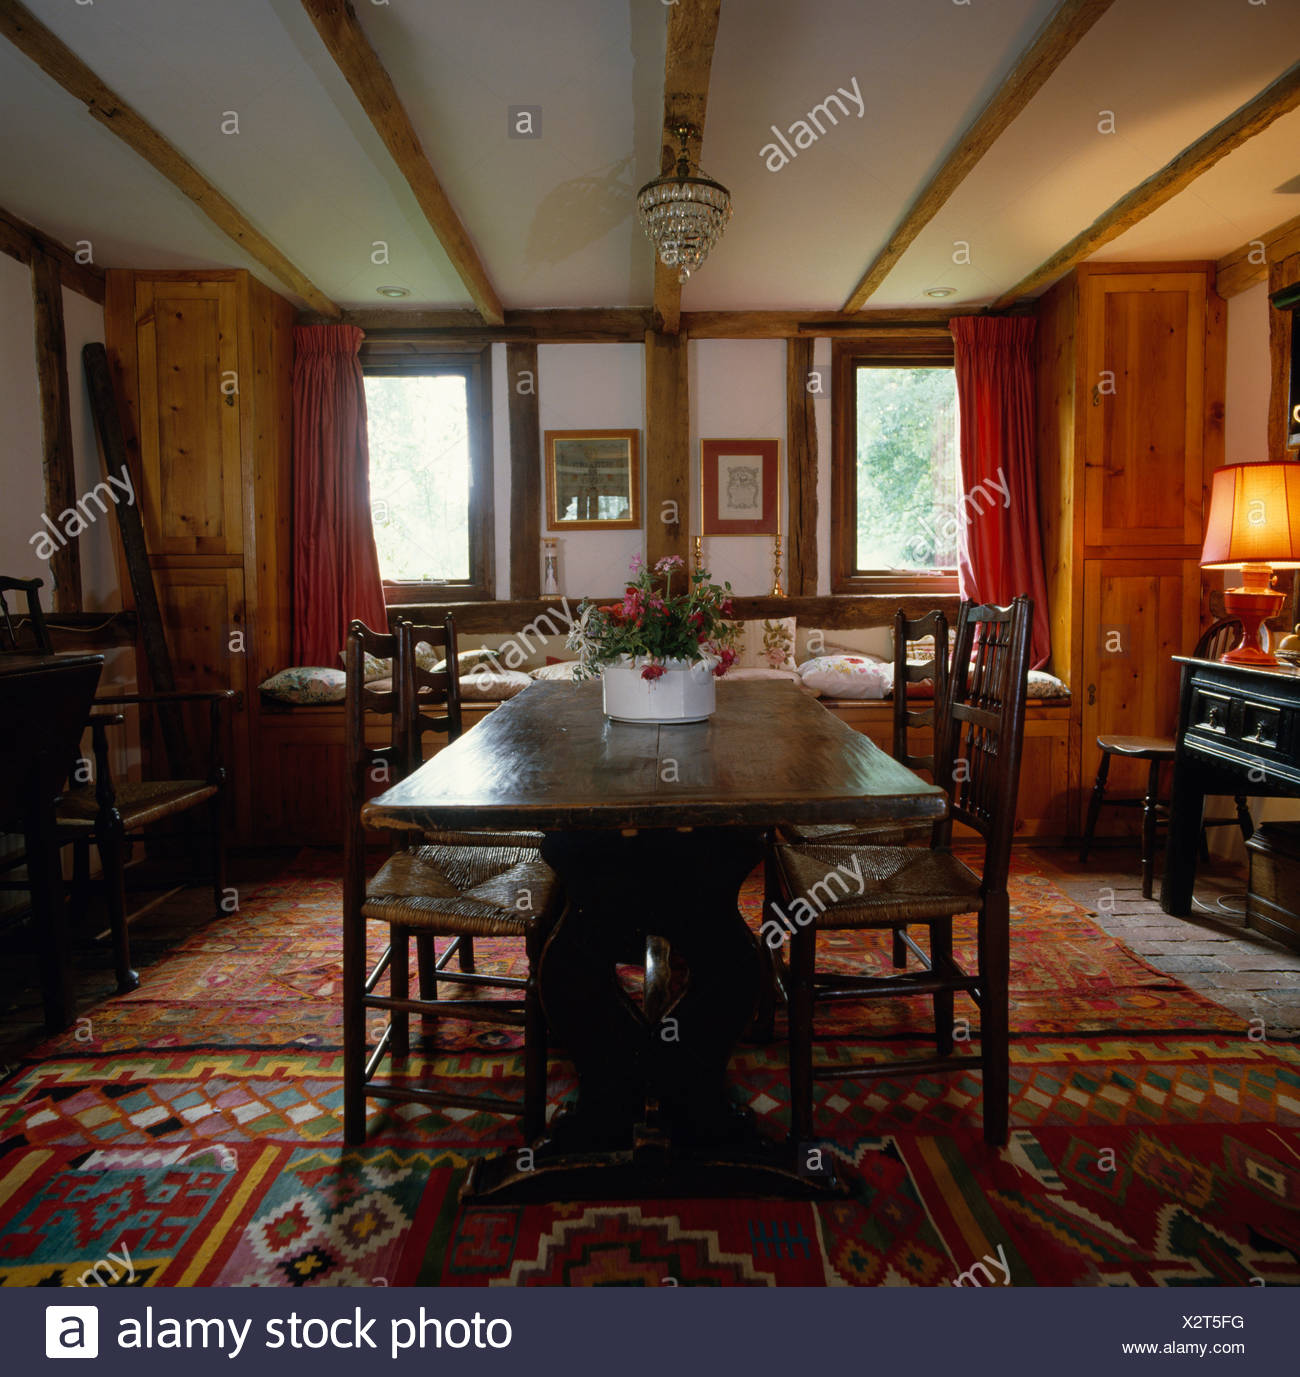 Antique oak table and chairs in country dining room with kelim rugs on the  floor - Antique Oak Table And Chairs In Country Dining Room With Kelim Rugs